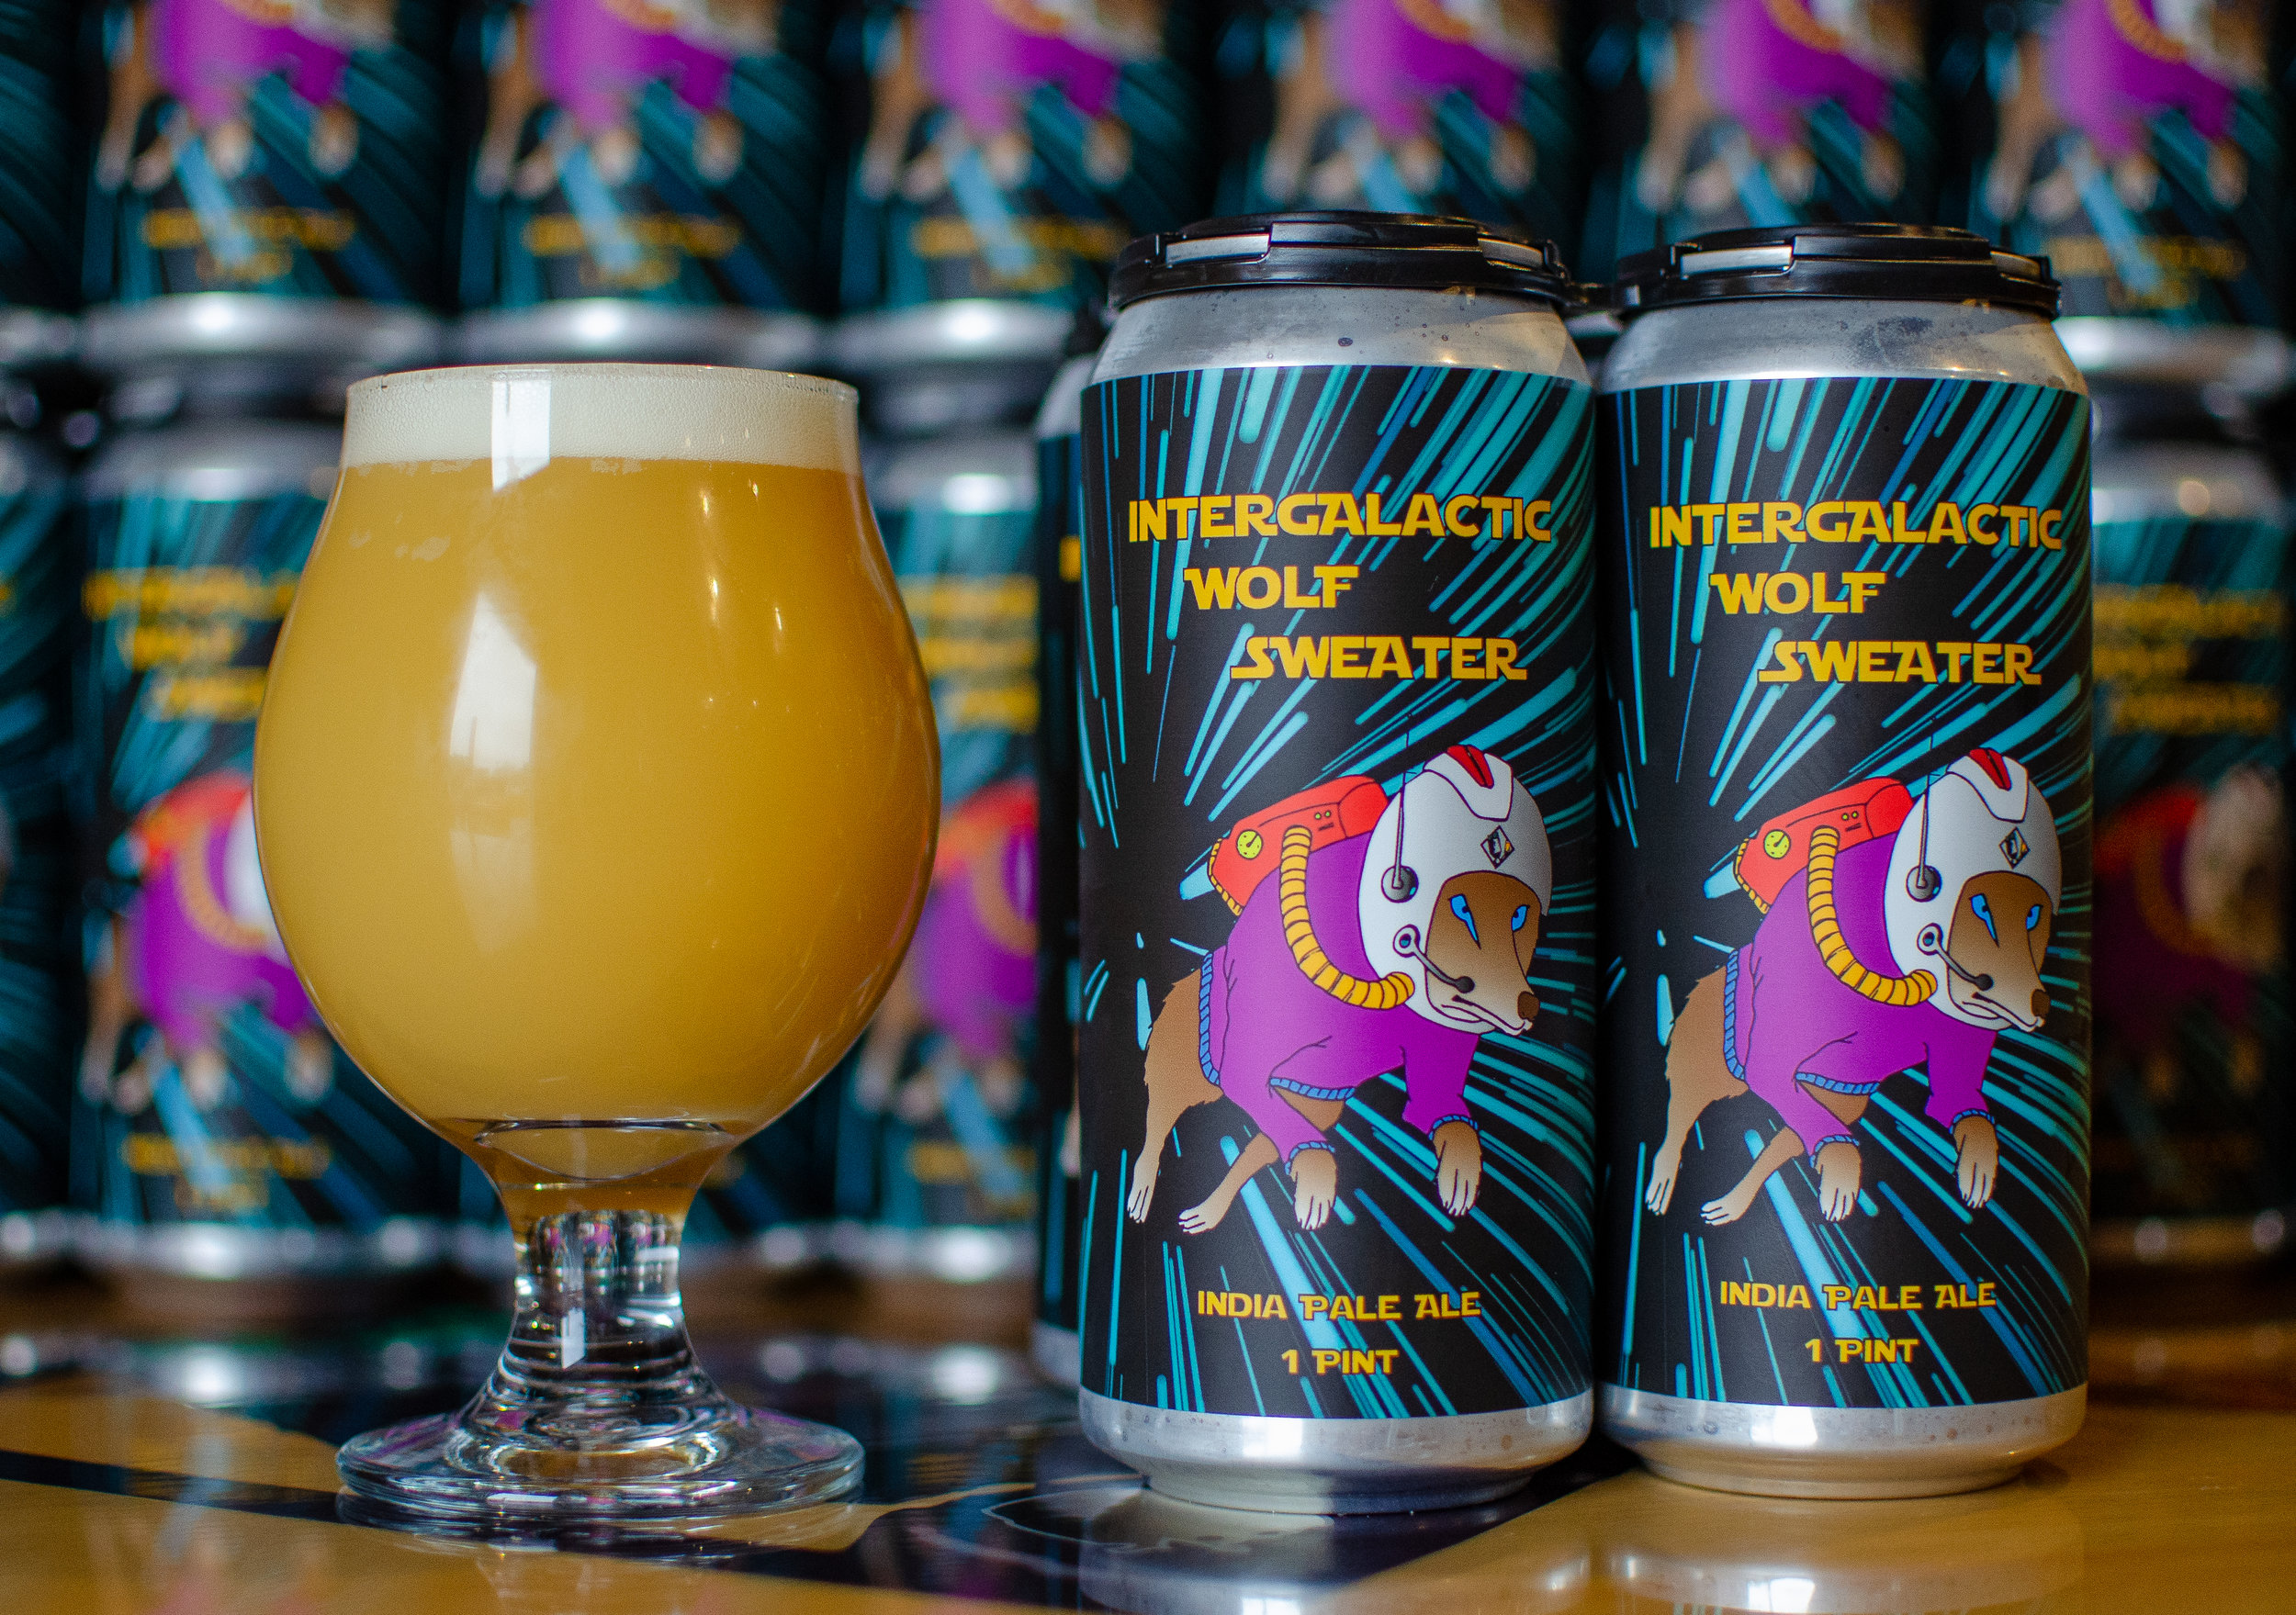 Intergalactic Wolf Sweater, DIPA - In a galaxy far, far away traveled a wolf named Styrian. His only protection; a beautiful cashmere sweater. Who doesn't like cashmere? No one! That's right, you wish you had one too, don't lie. He combs the universe seeking an IPA yet to be discovered, an IPA so juicy and delicious even George Lucas wouldn't pass this one up. An IPA Jabba The Nut would drool over...